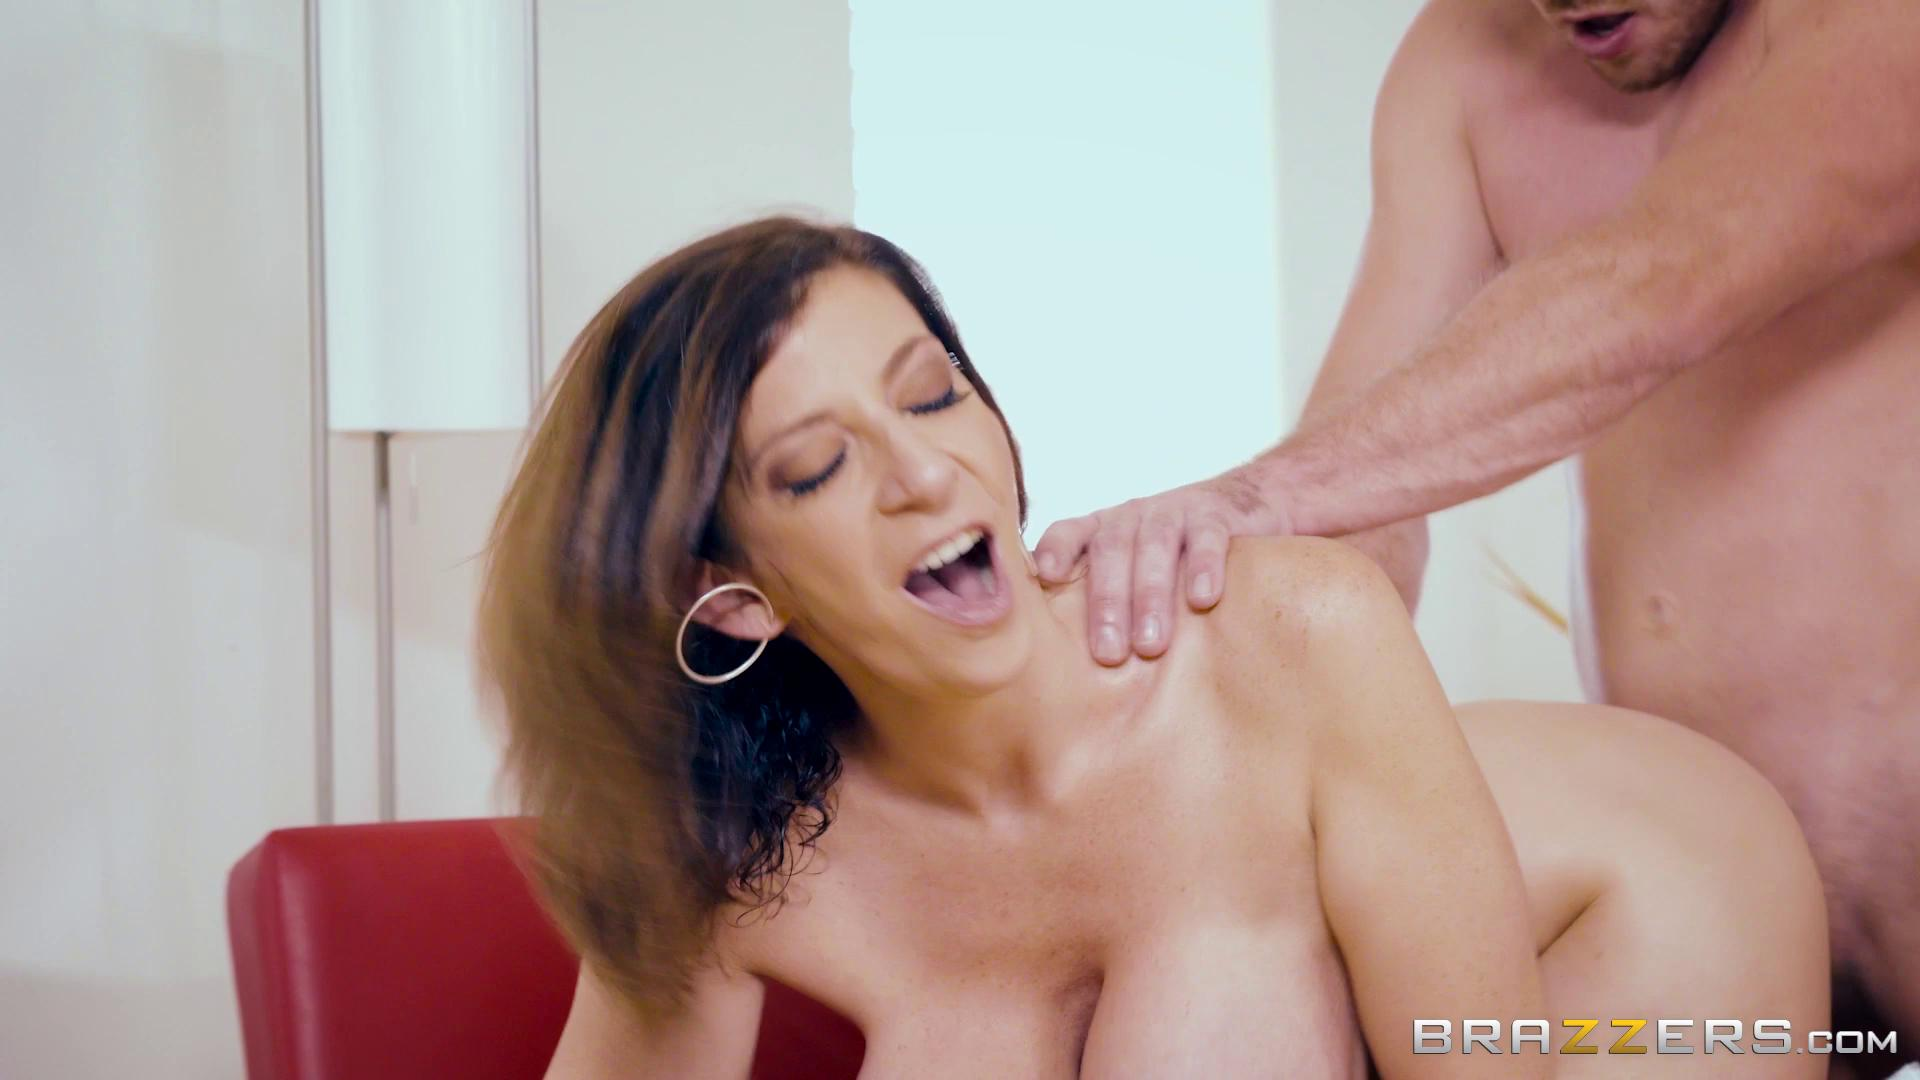 MommyGotBoobs – Sara Jay Putting Her Tits To Good Use